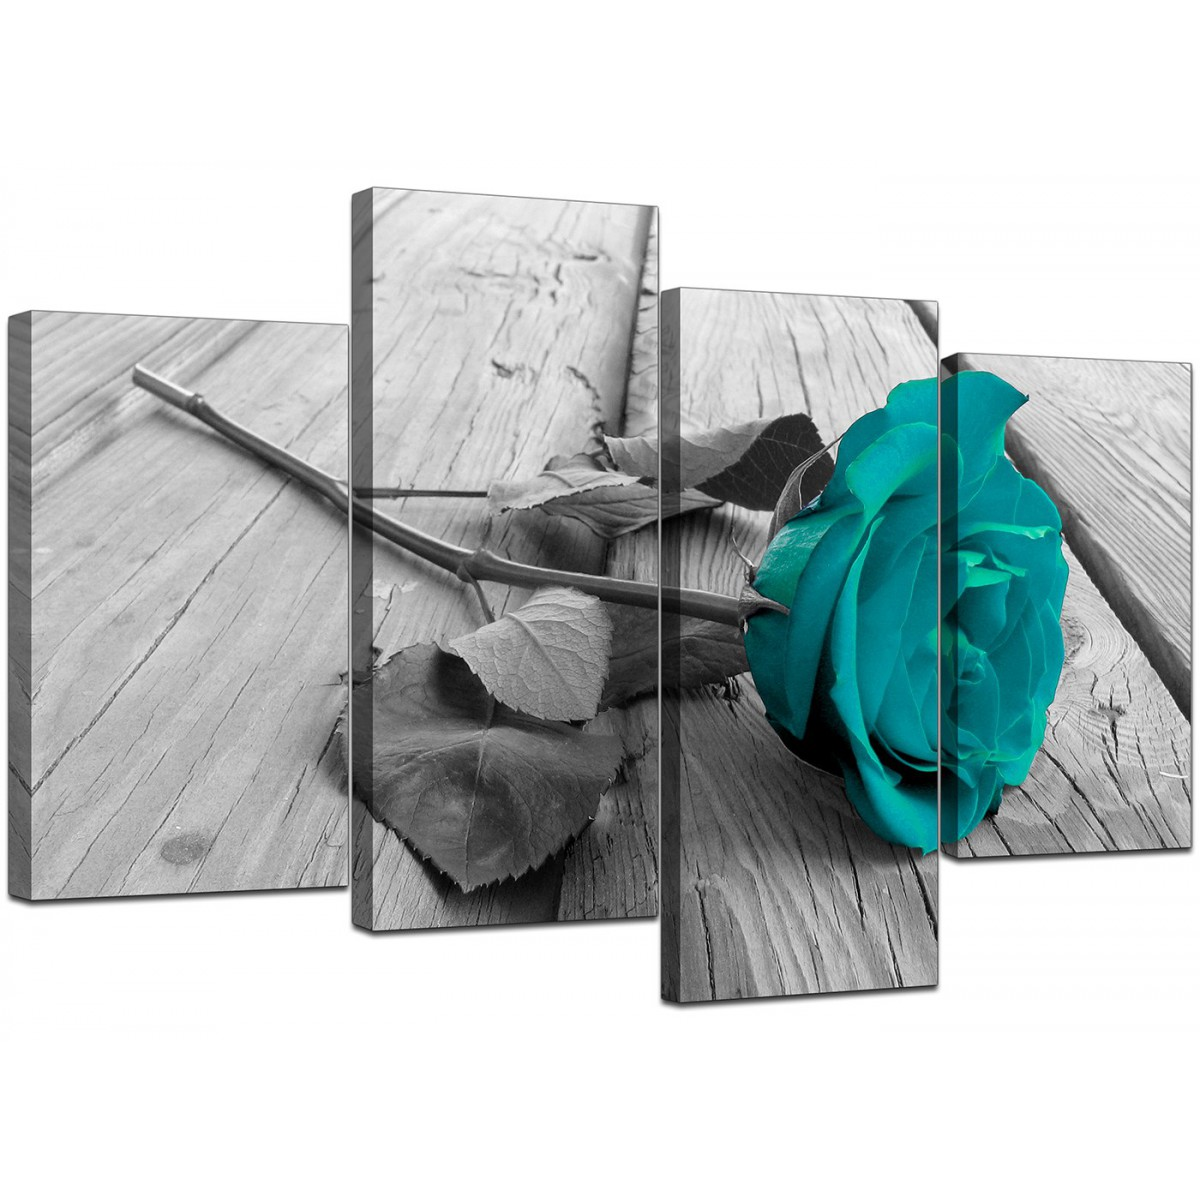 Black And White Canvas Prints Canvas Prints Uk Of Teal Rose In Black And White For Your